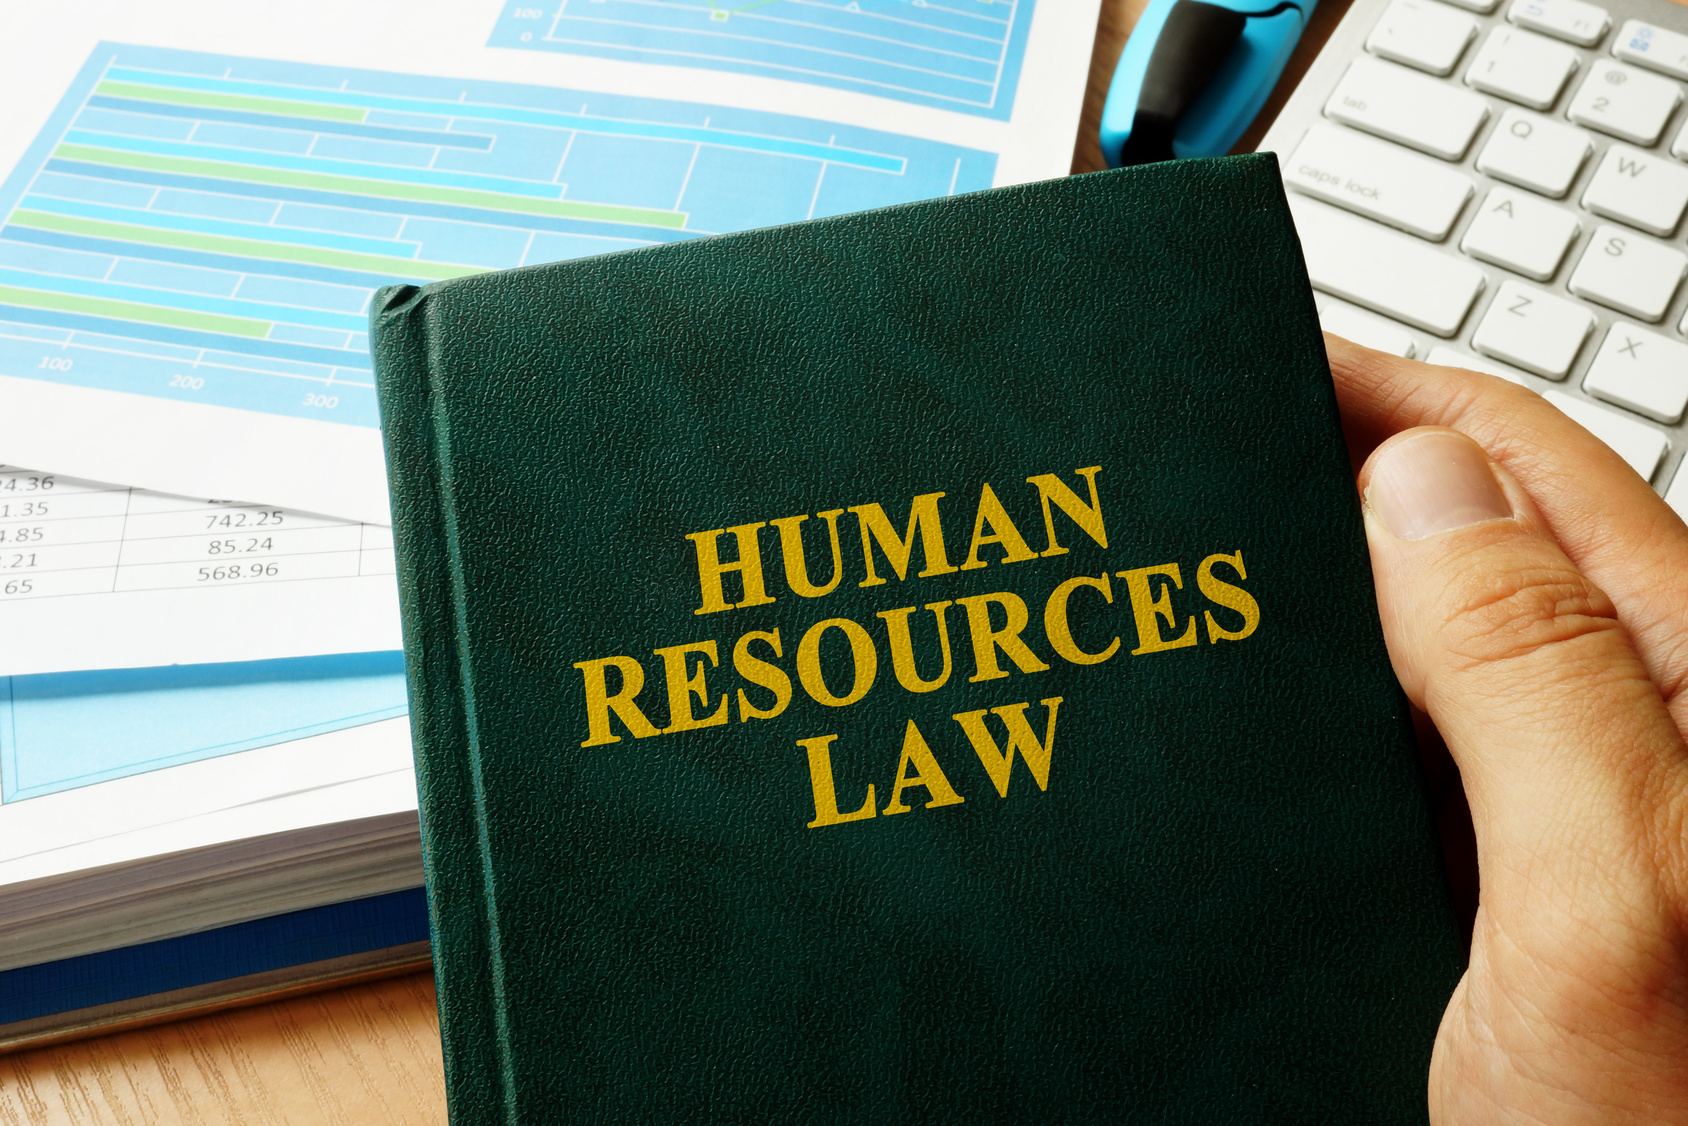 Book with title Human Resources HR Law.